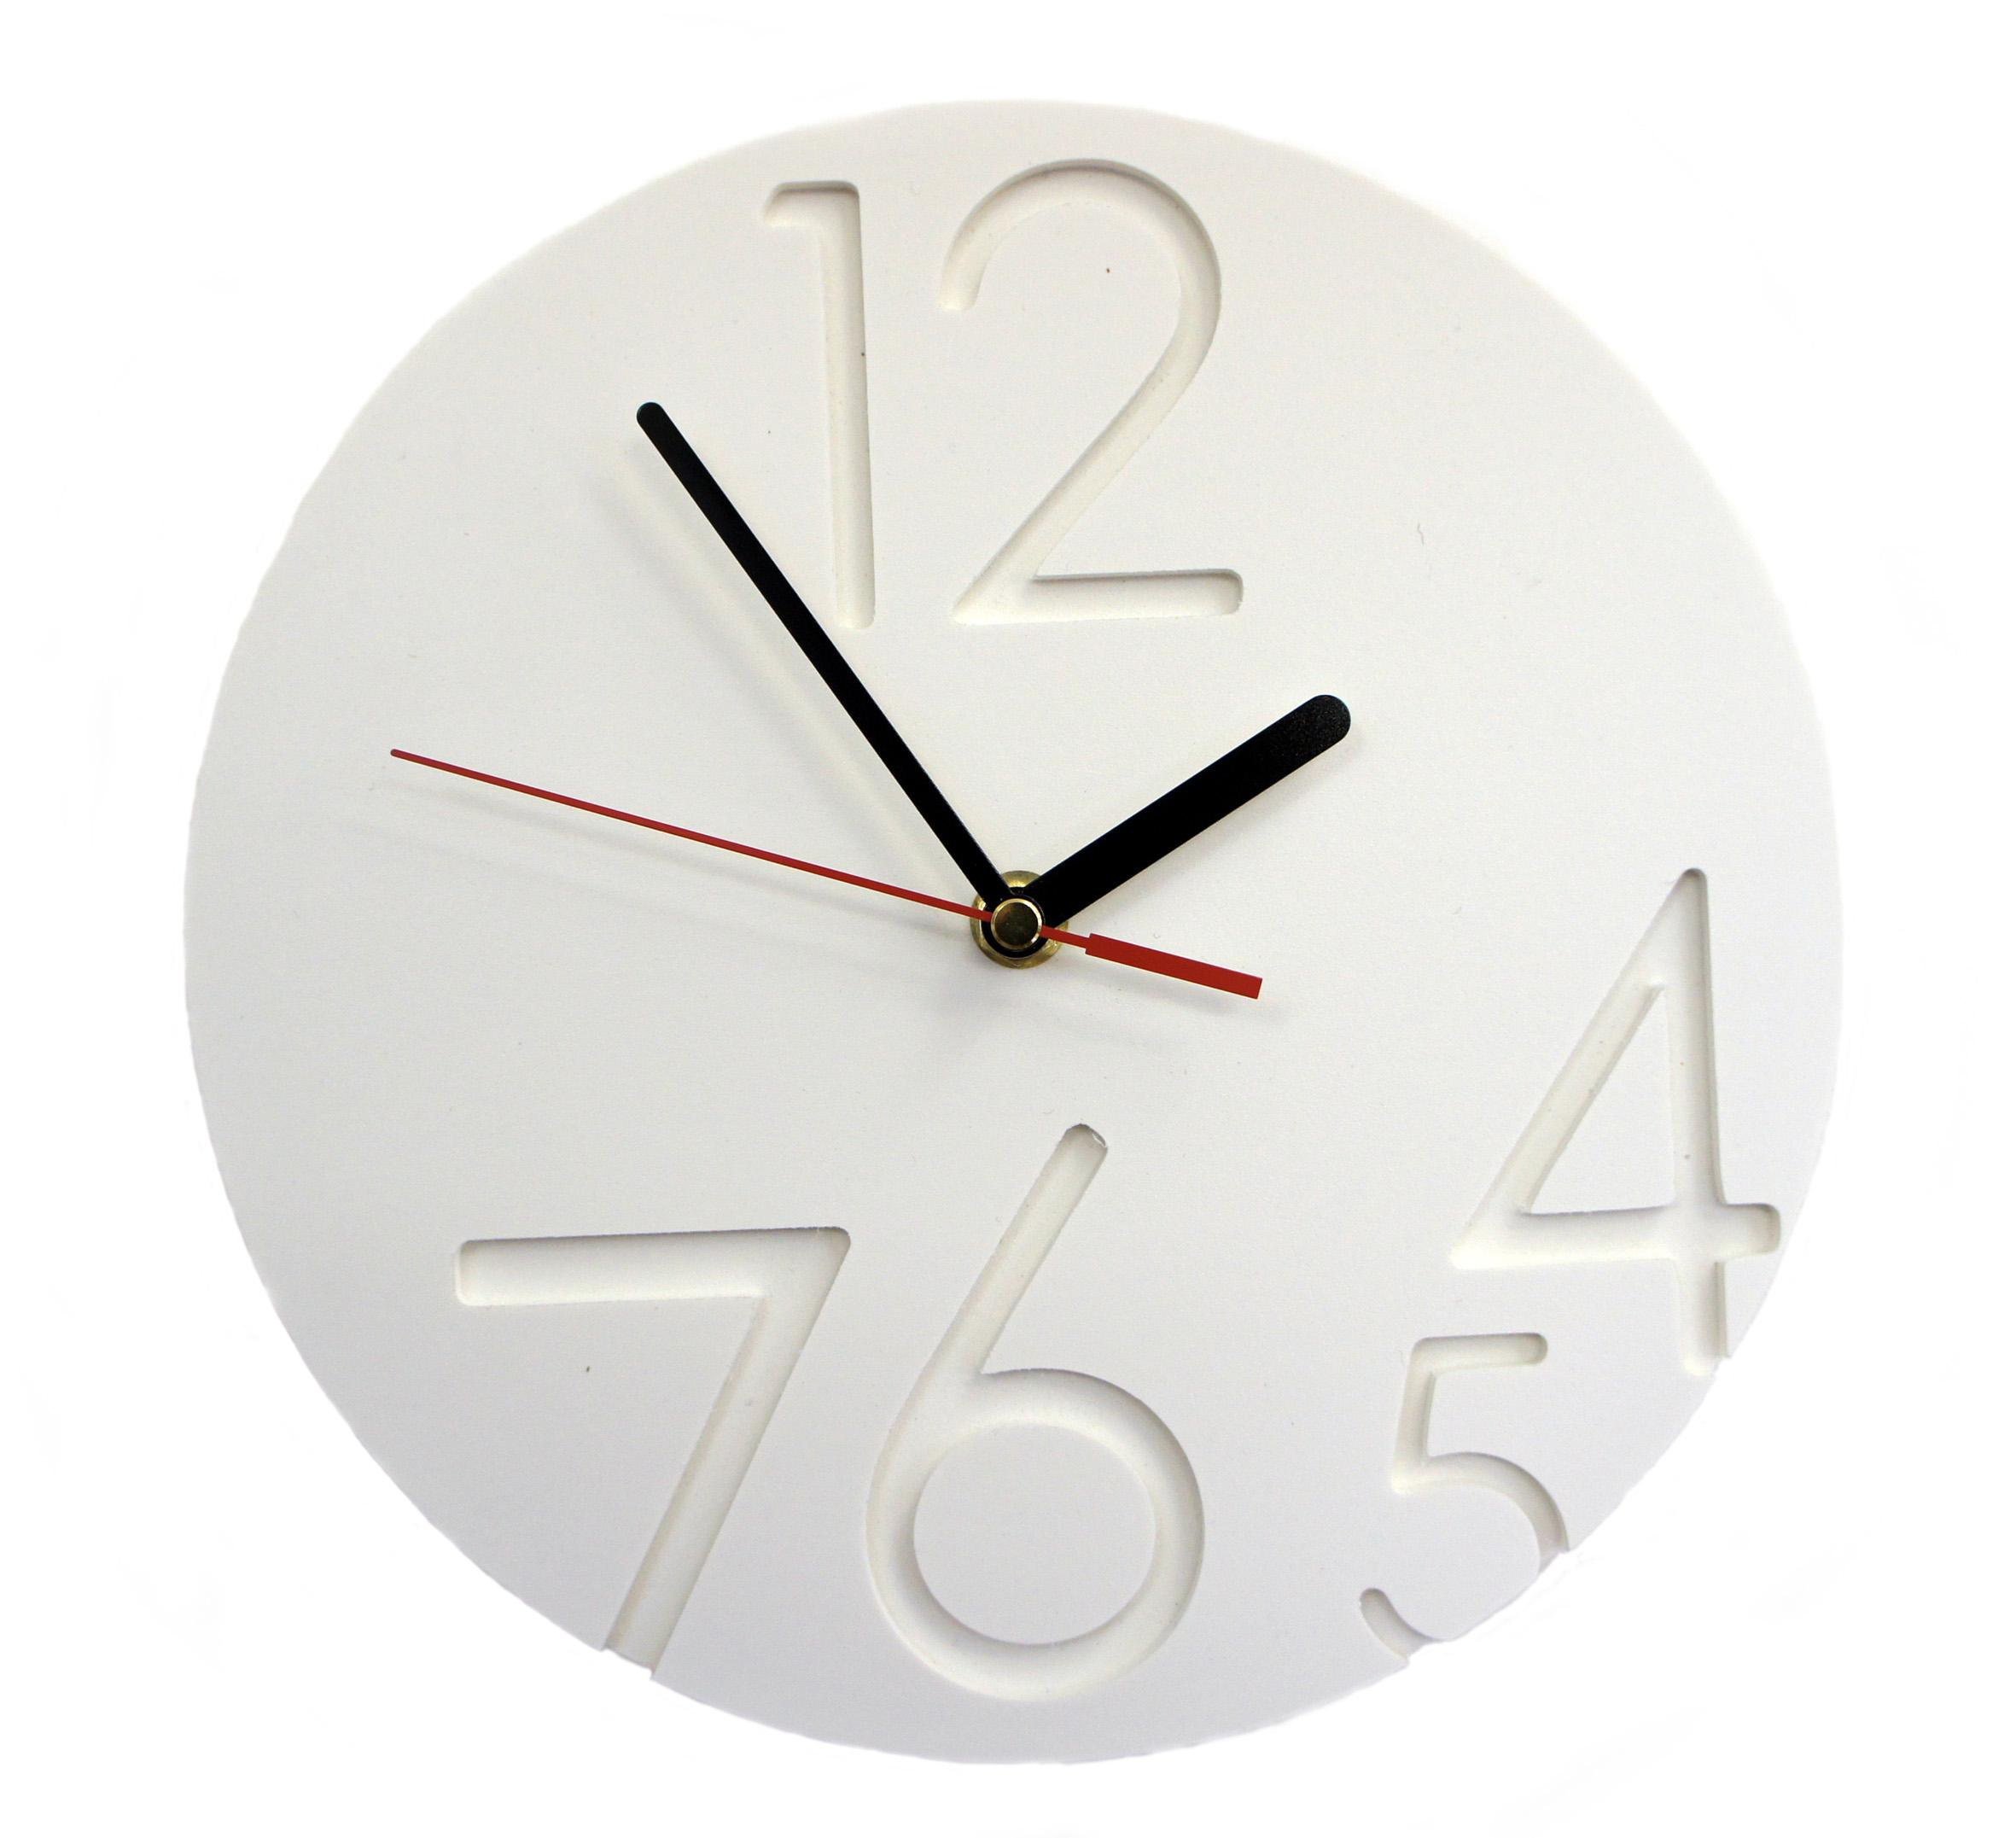 1-modern-stylish-clock-white.jpg 2,362×2,153 pixels